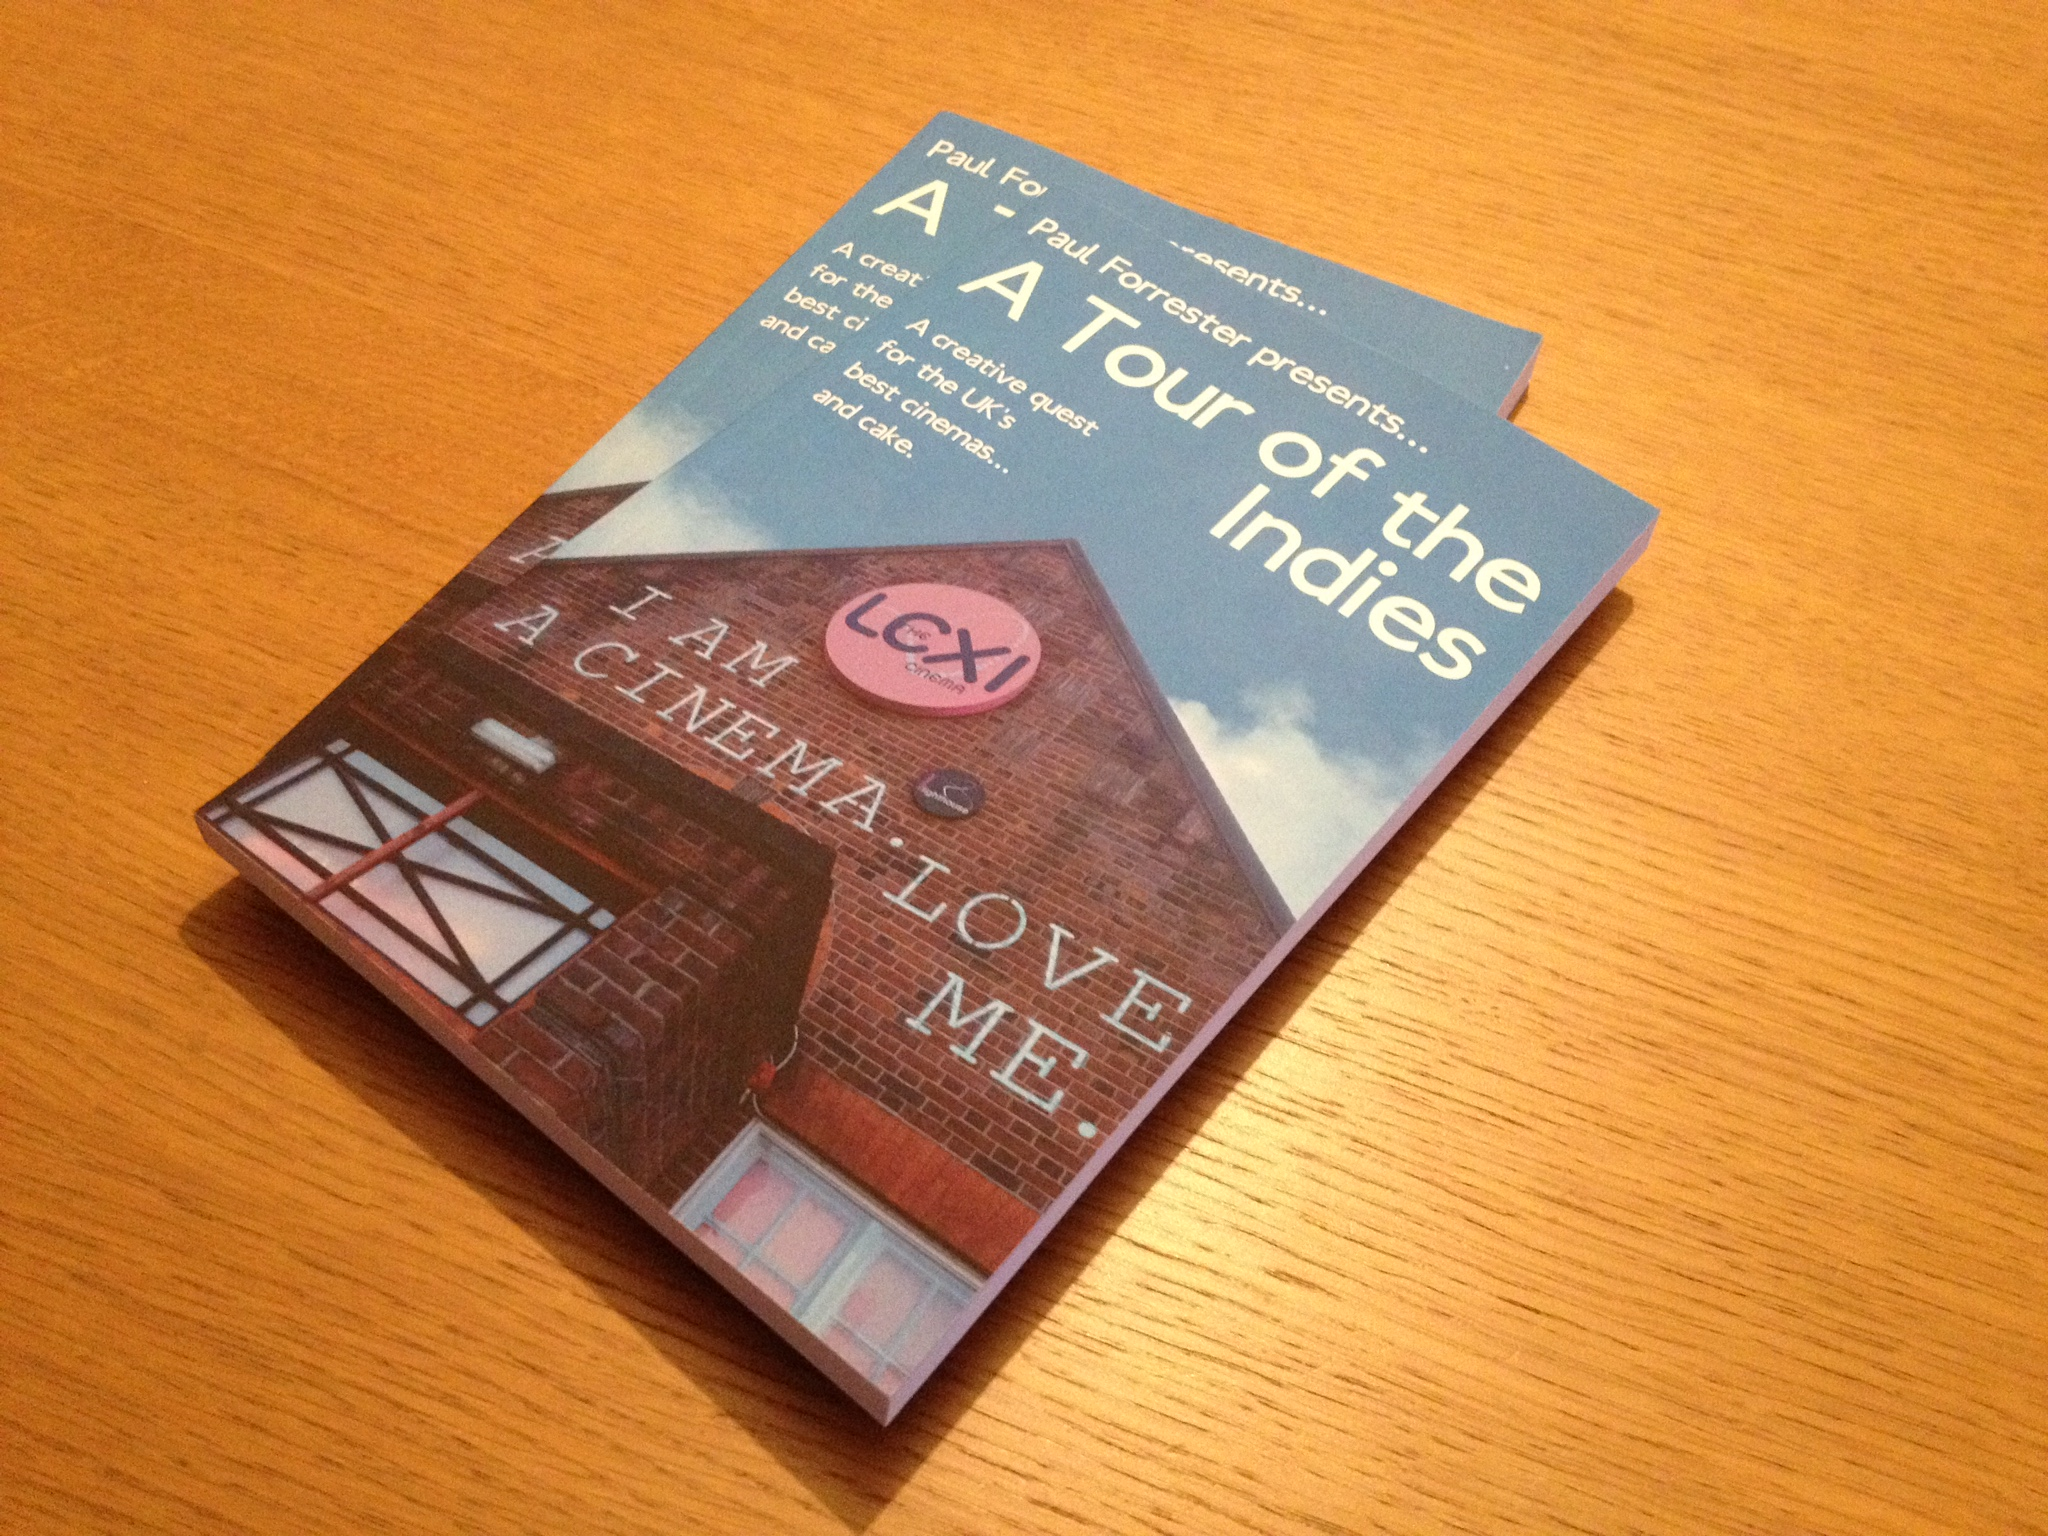 Two remaining copies of  A Tour of the Indies  from the box of fifty (photograph by Paul Forrester)